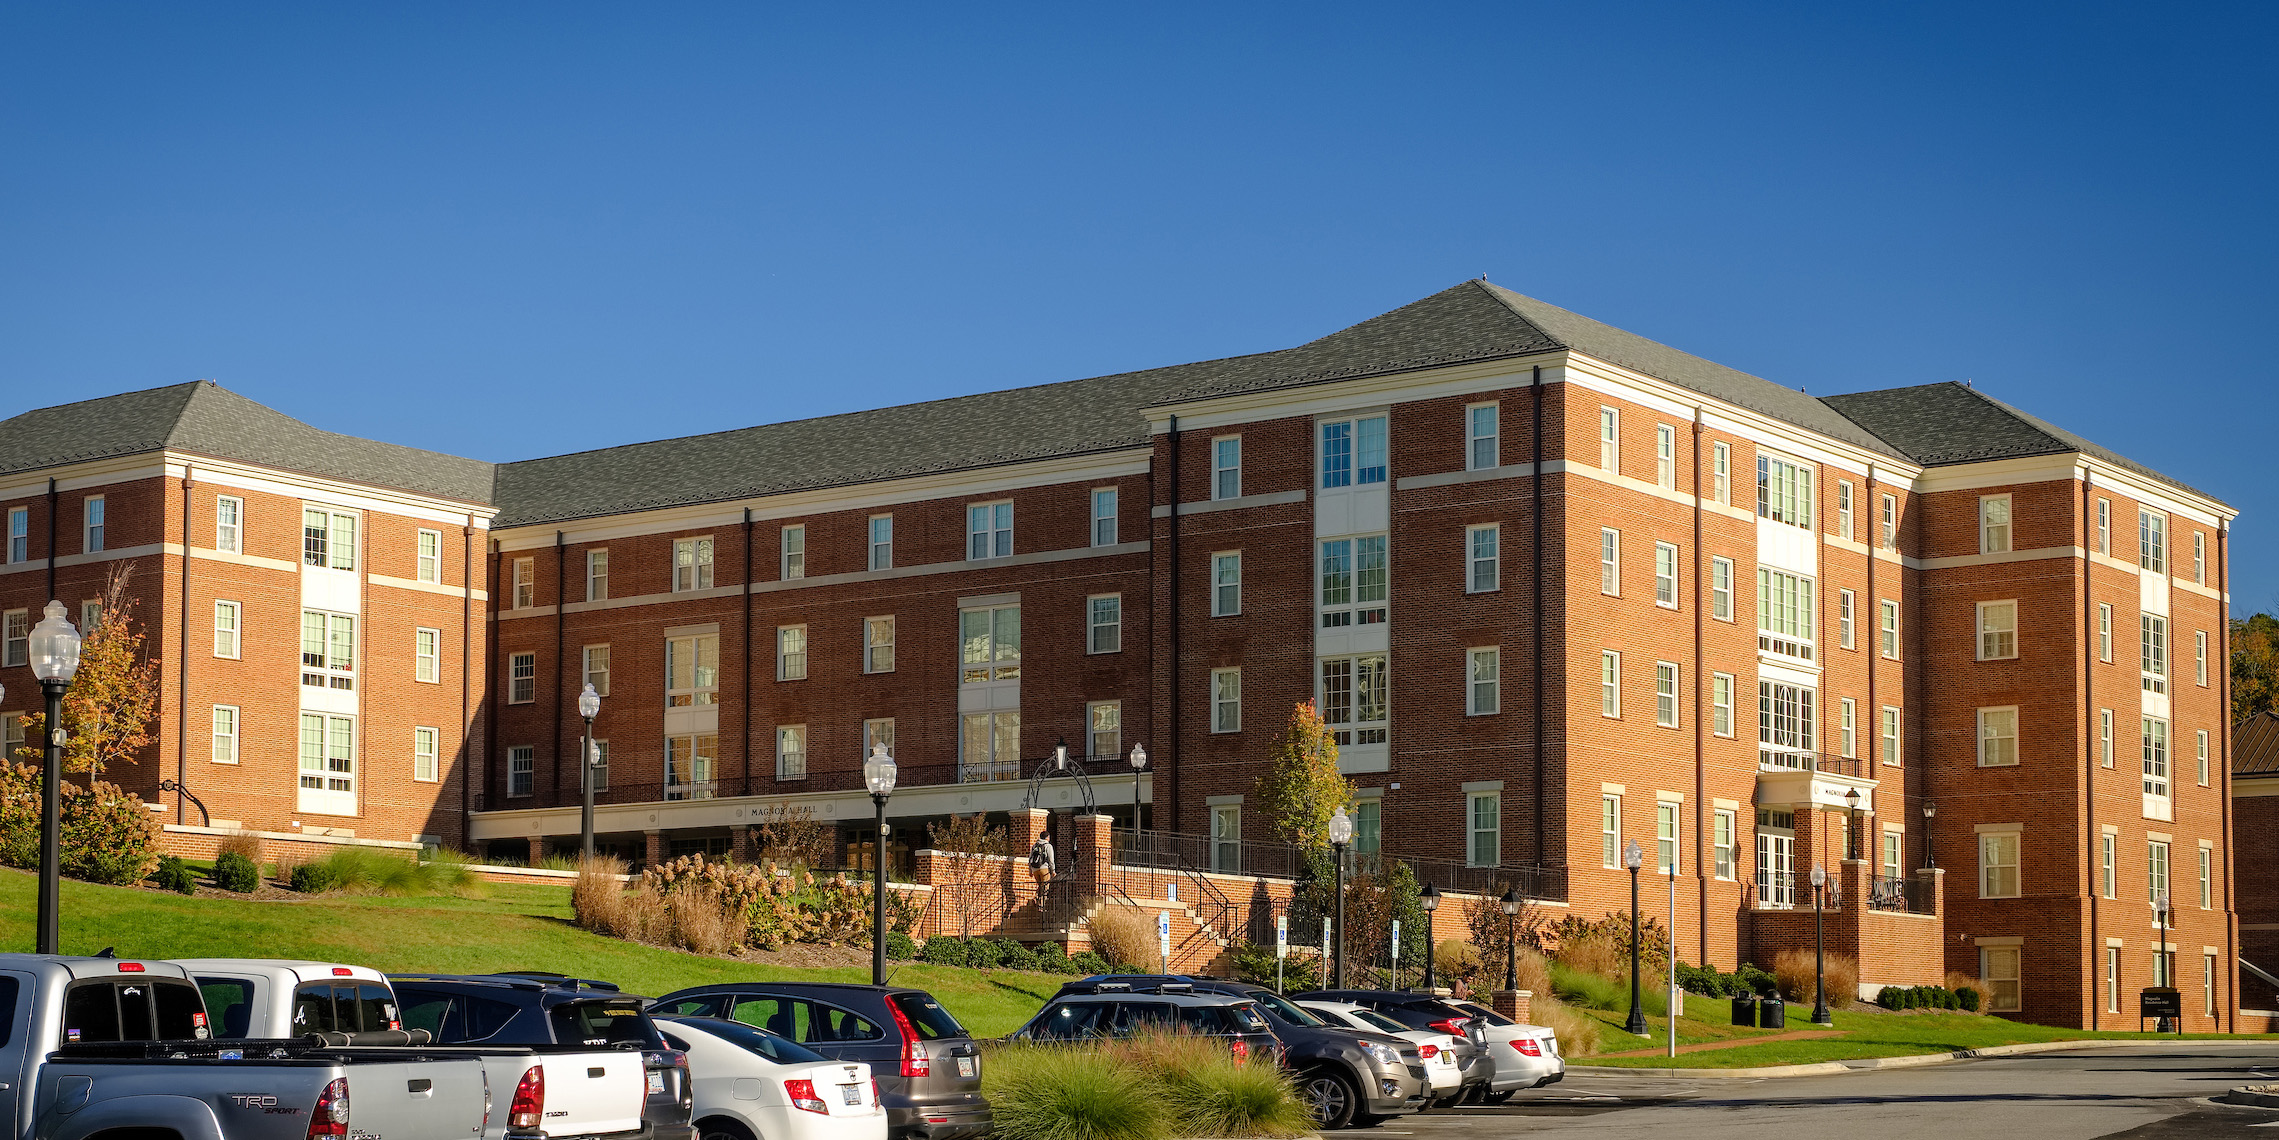 Full building photograph of Magnolia residence hall